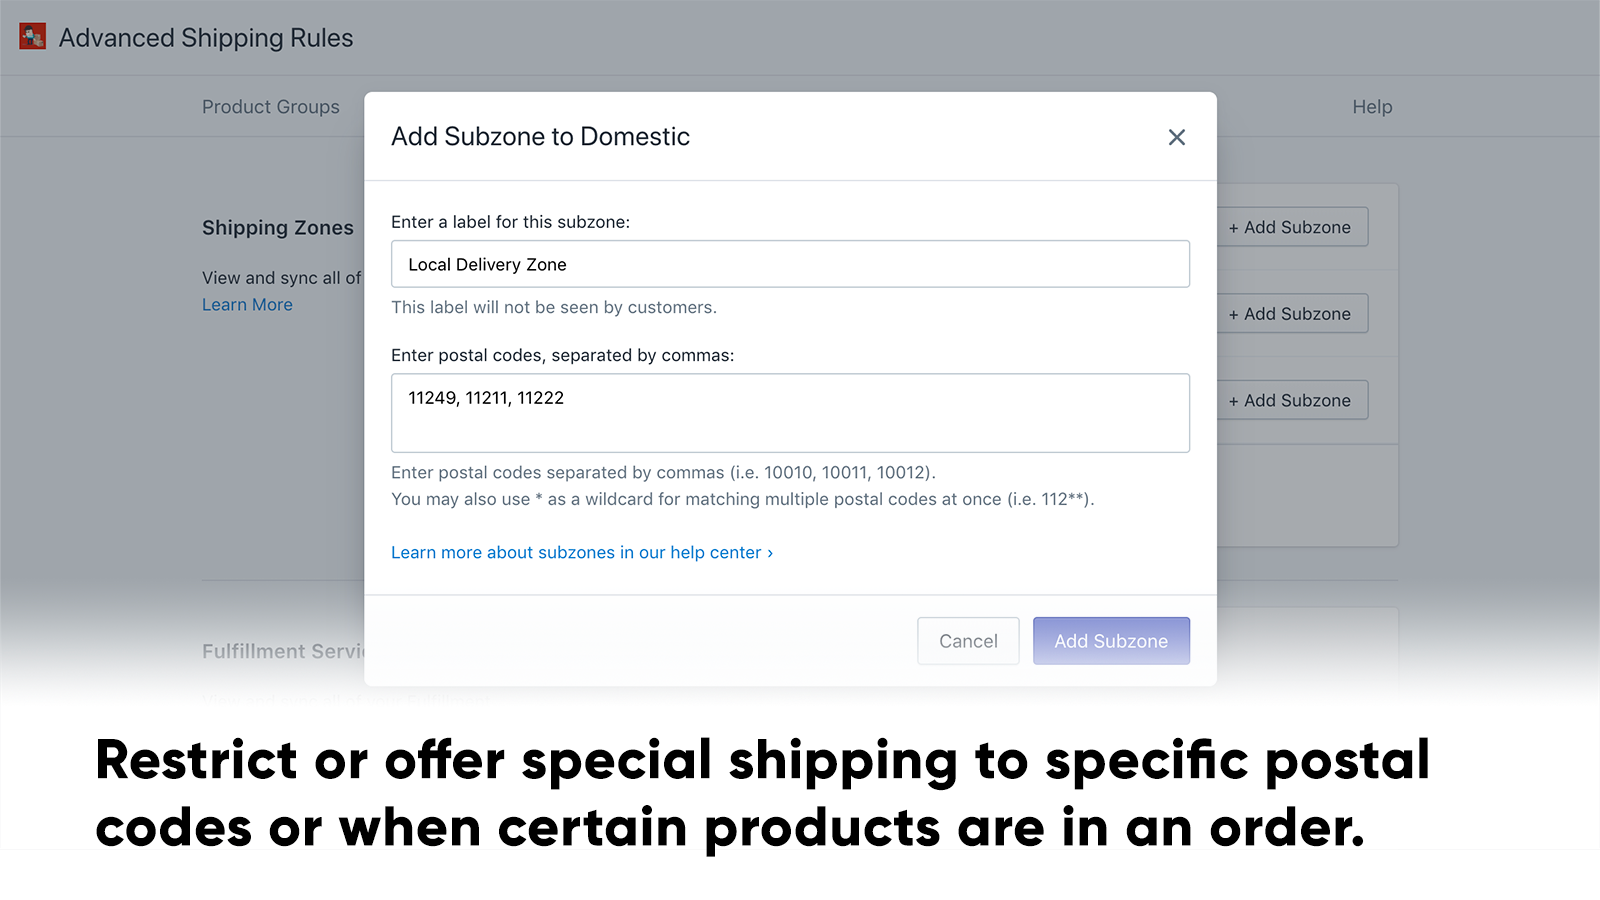 Restrict or offer special shipping to specific postal codes